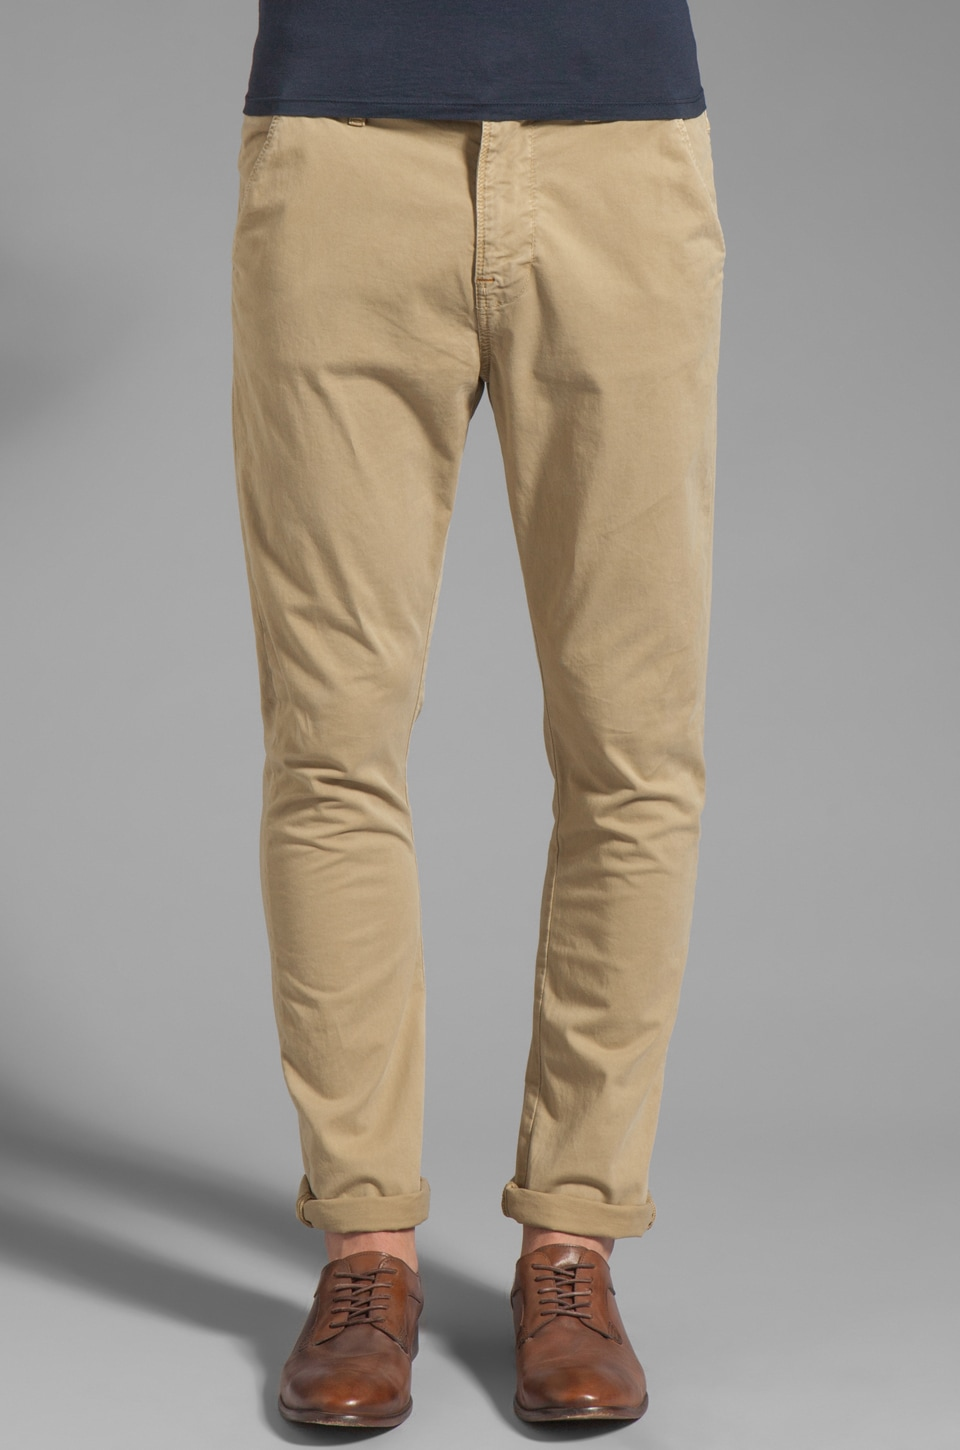 Nudie Jeans Khaki Slim in Organic Warm Sand